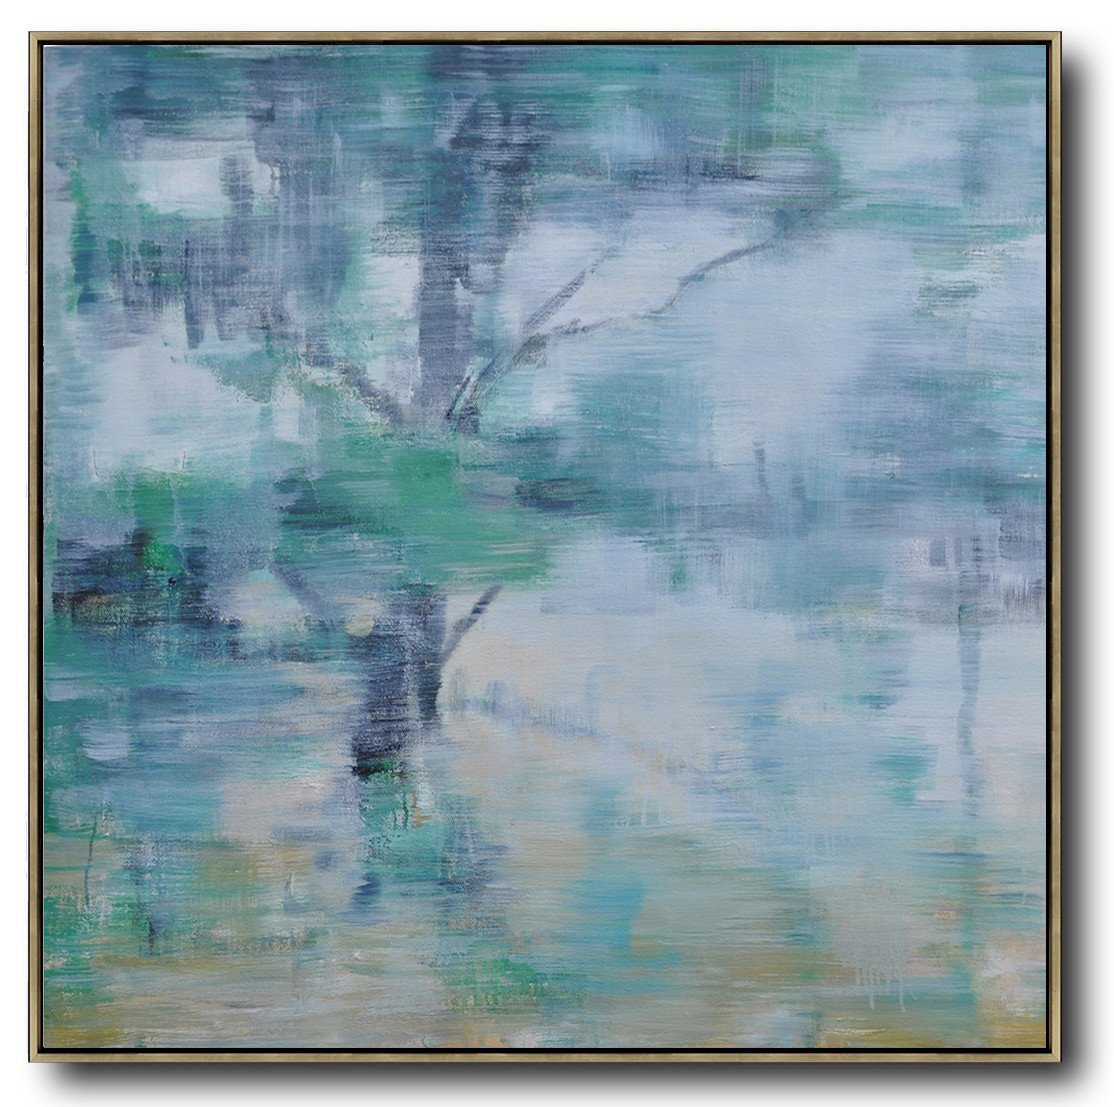 Extra Large Canvas Art,Oversized Abstract Landscape Oil Painting,Contemporary Wall Art,Gray,Green,White.etc